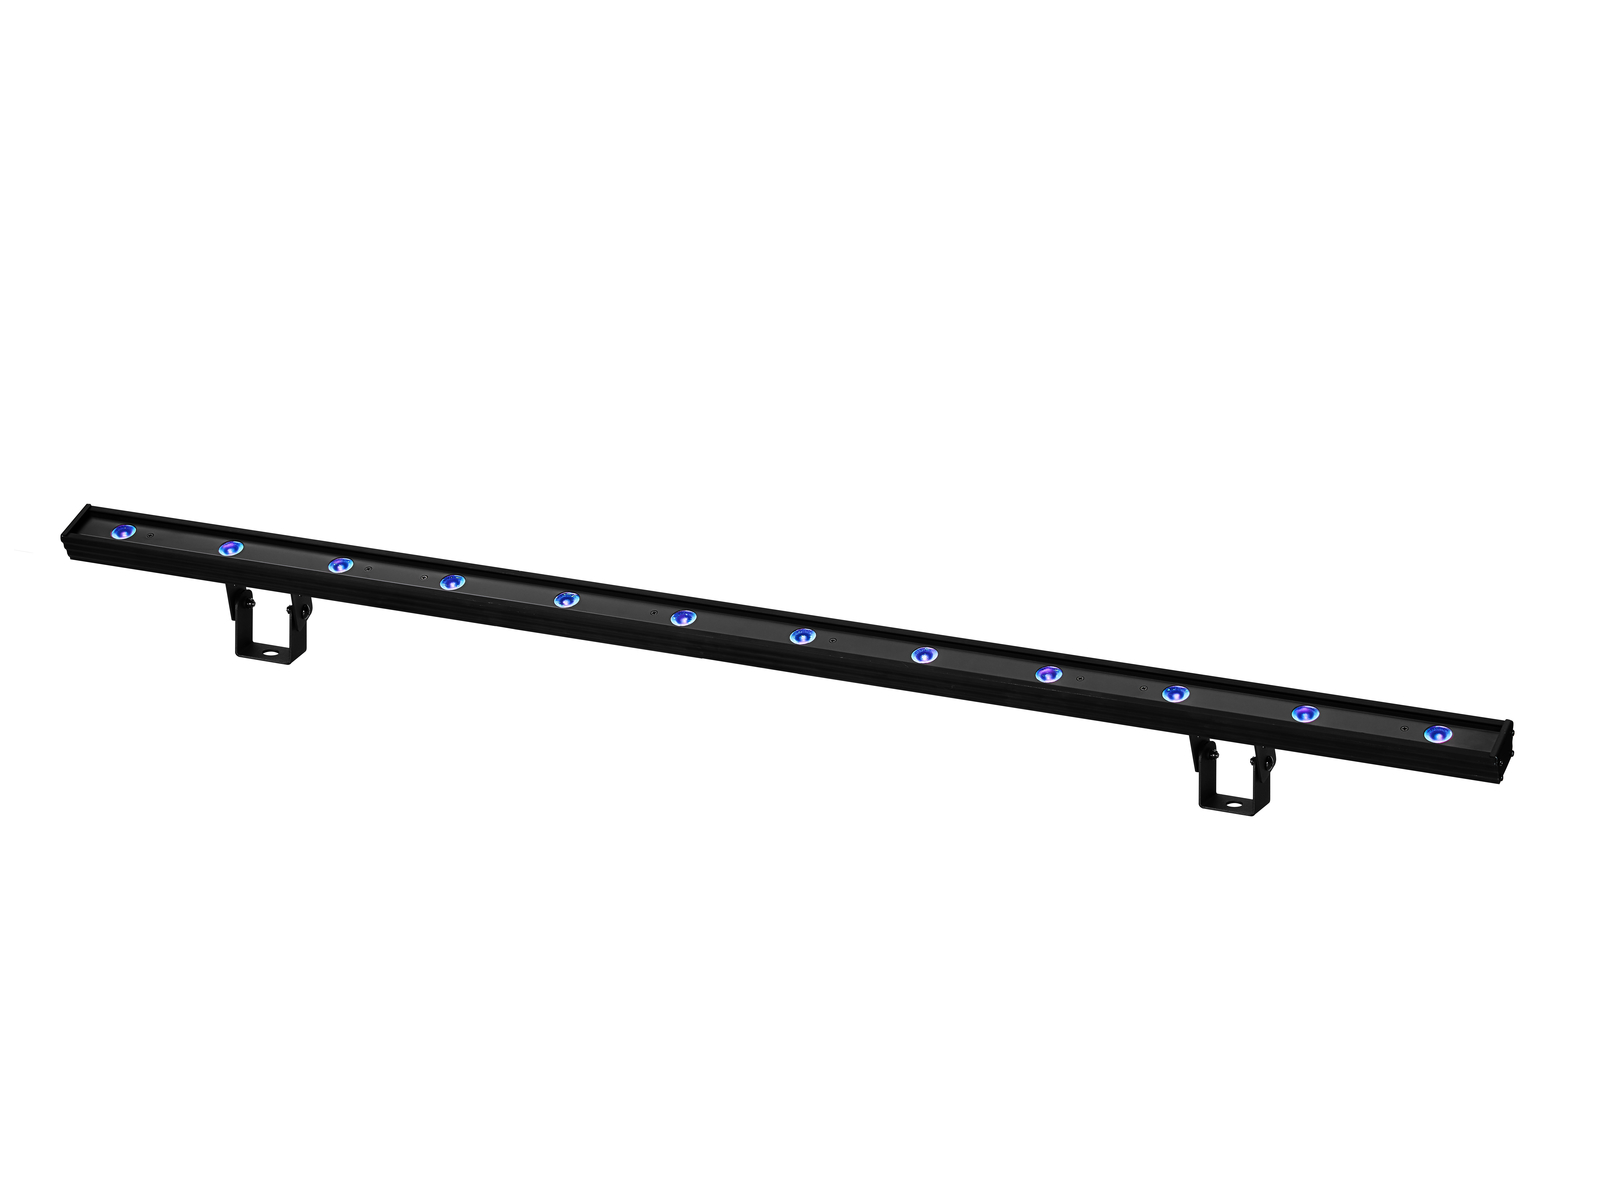 Antari DarkFX Strip 1020, UV LED bar, 12x 1,9 W UV, DMX